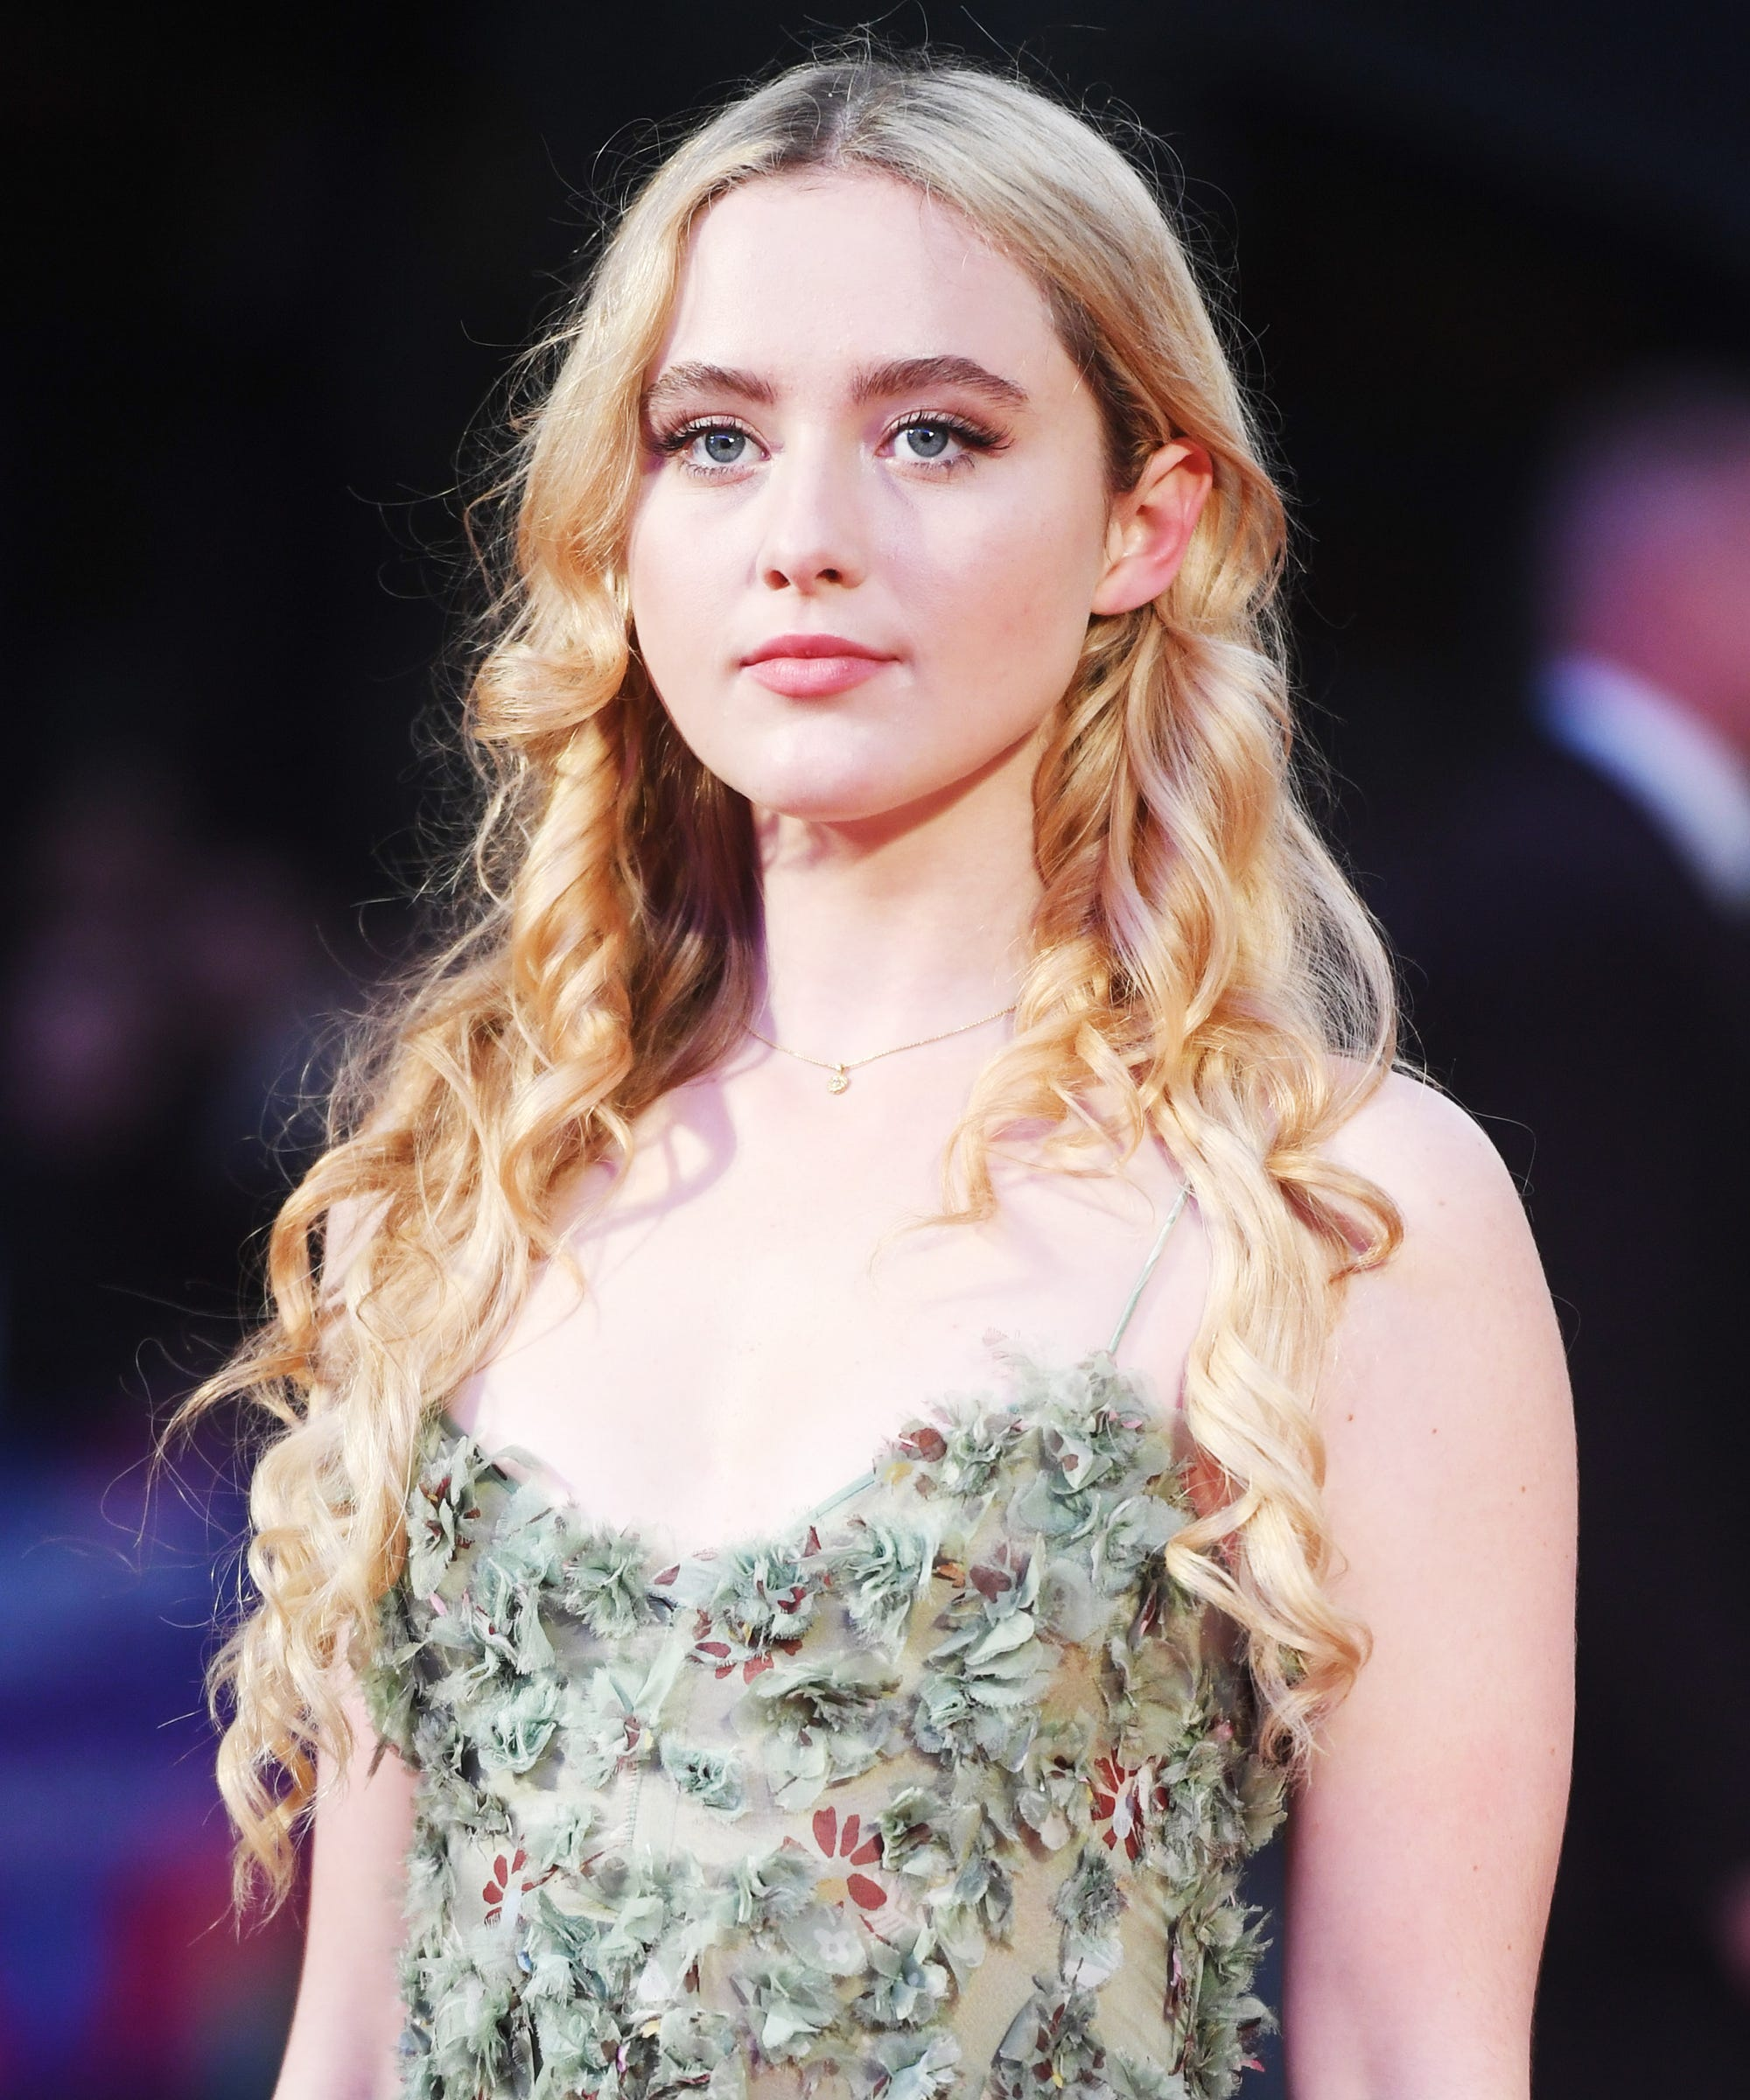 Young blonde actresses under 25